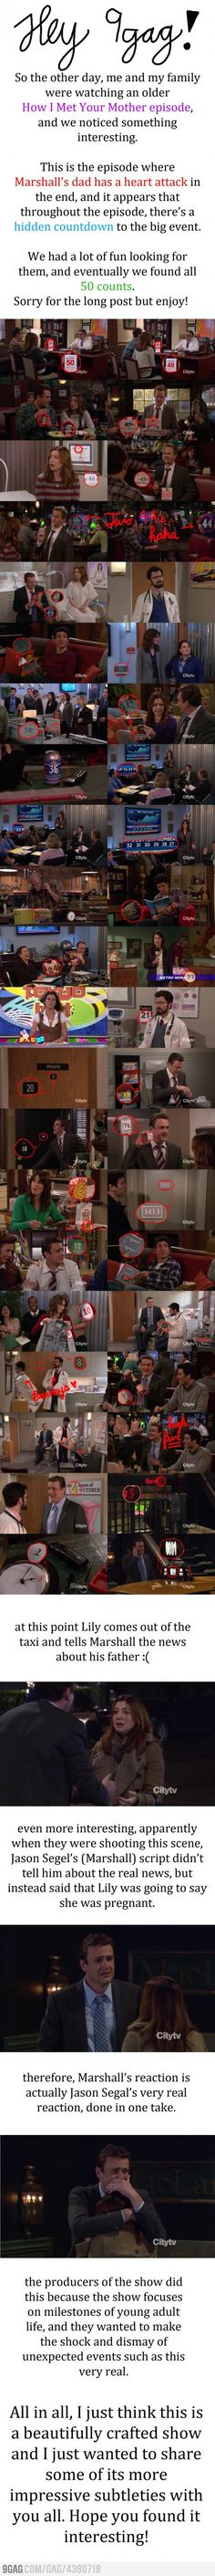 Hidden messages in How I Met Your Mother! I love this show so much! Amazing!!